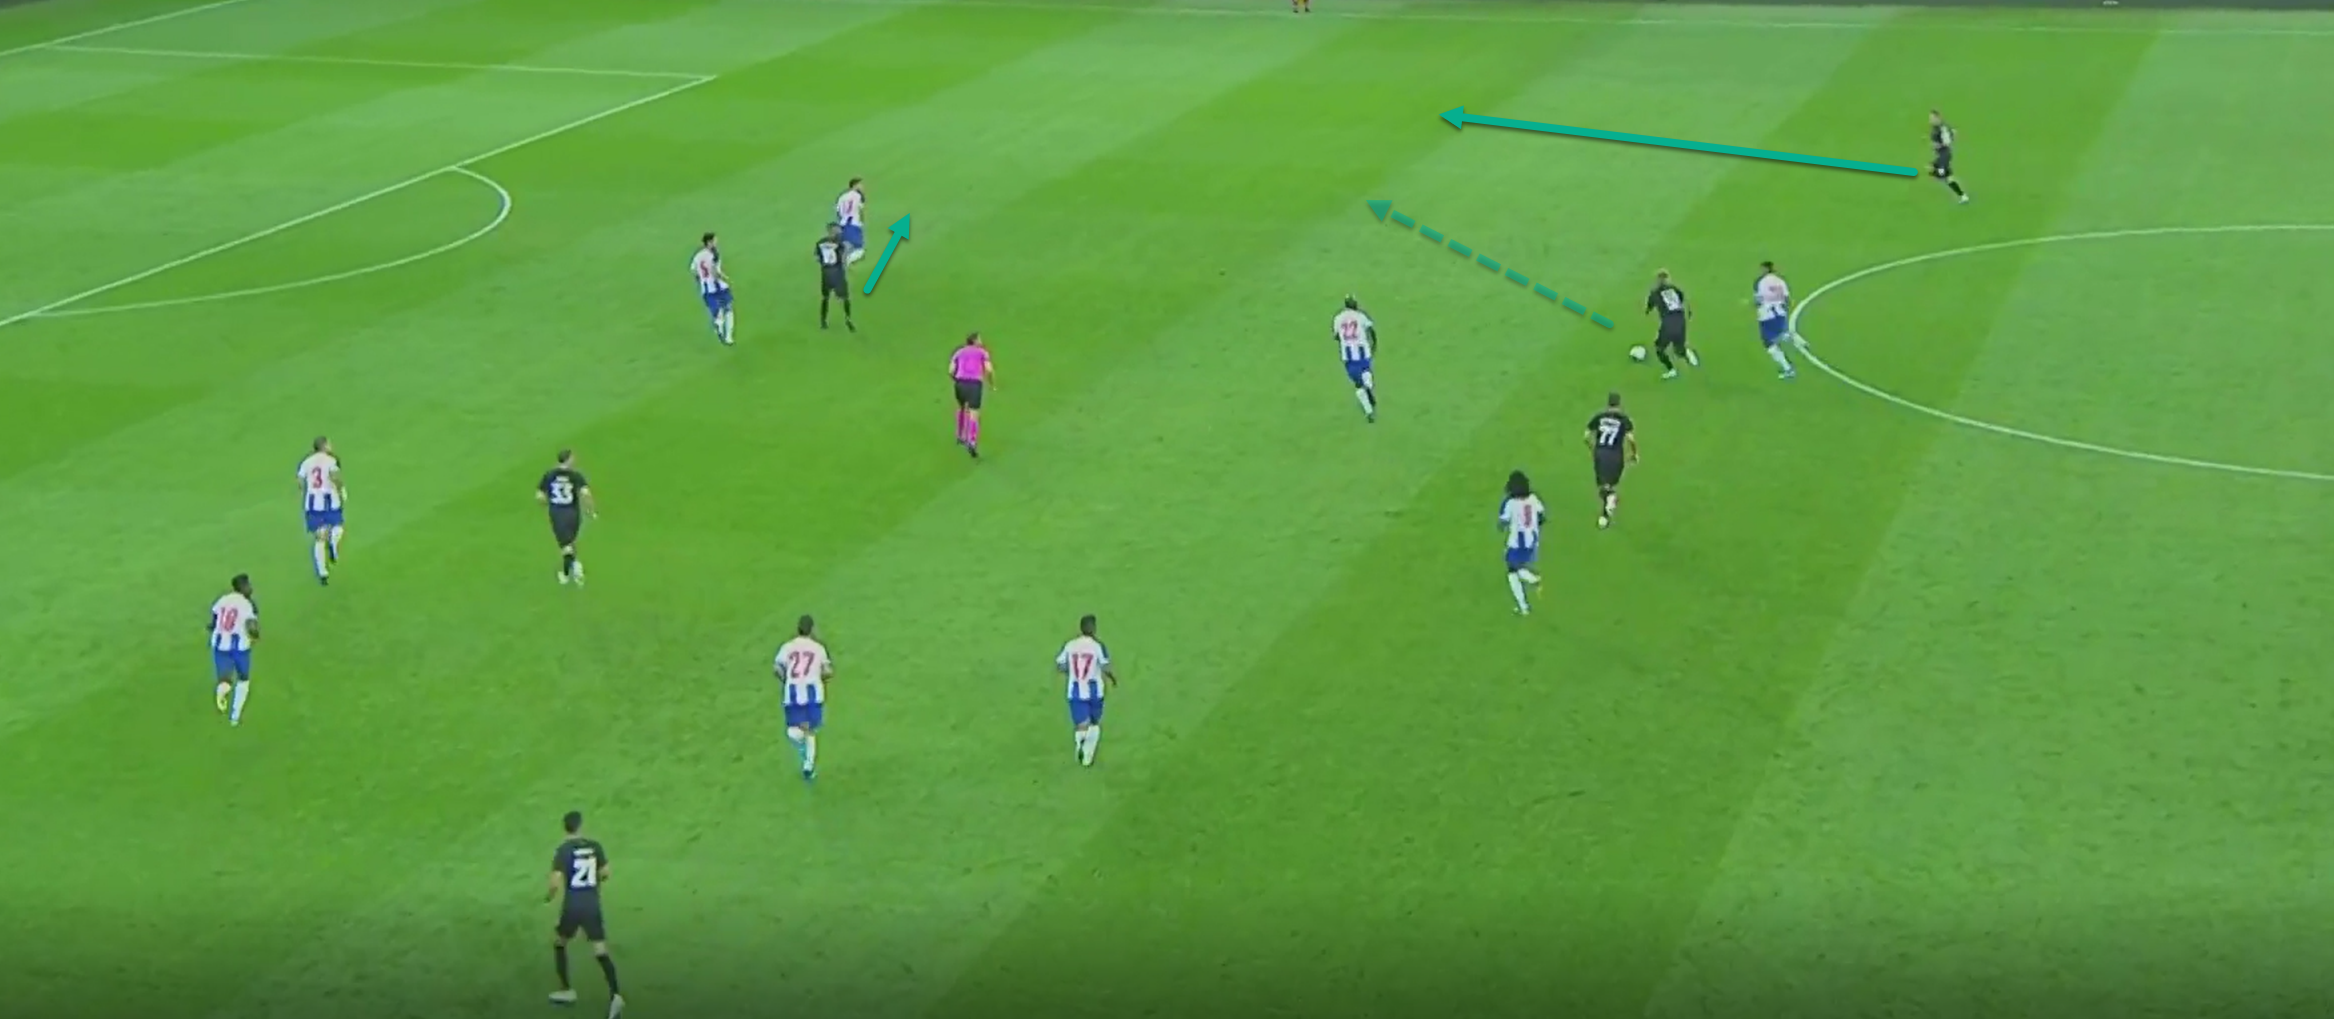 UEFA Champions League qualifiers: Krasnodar vs Porto- Tactical Analysis tactics